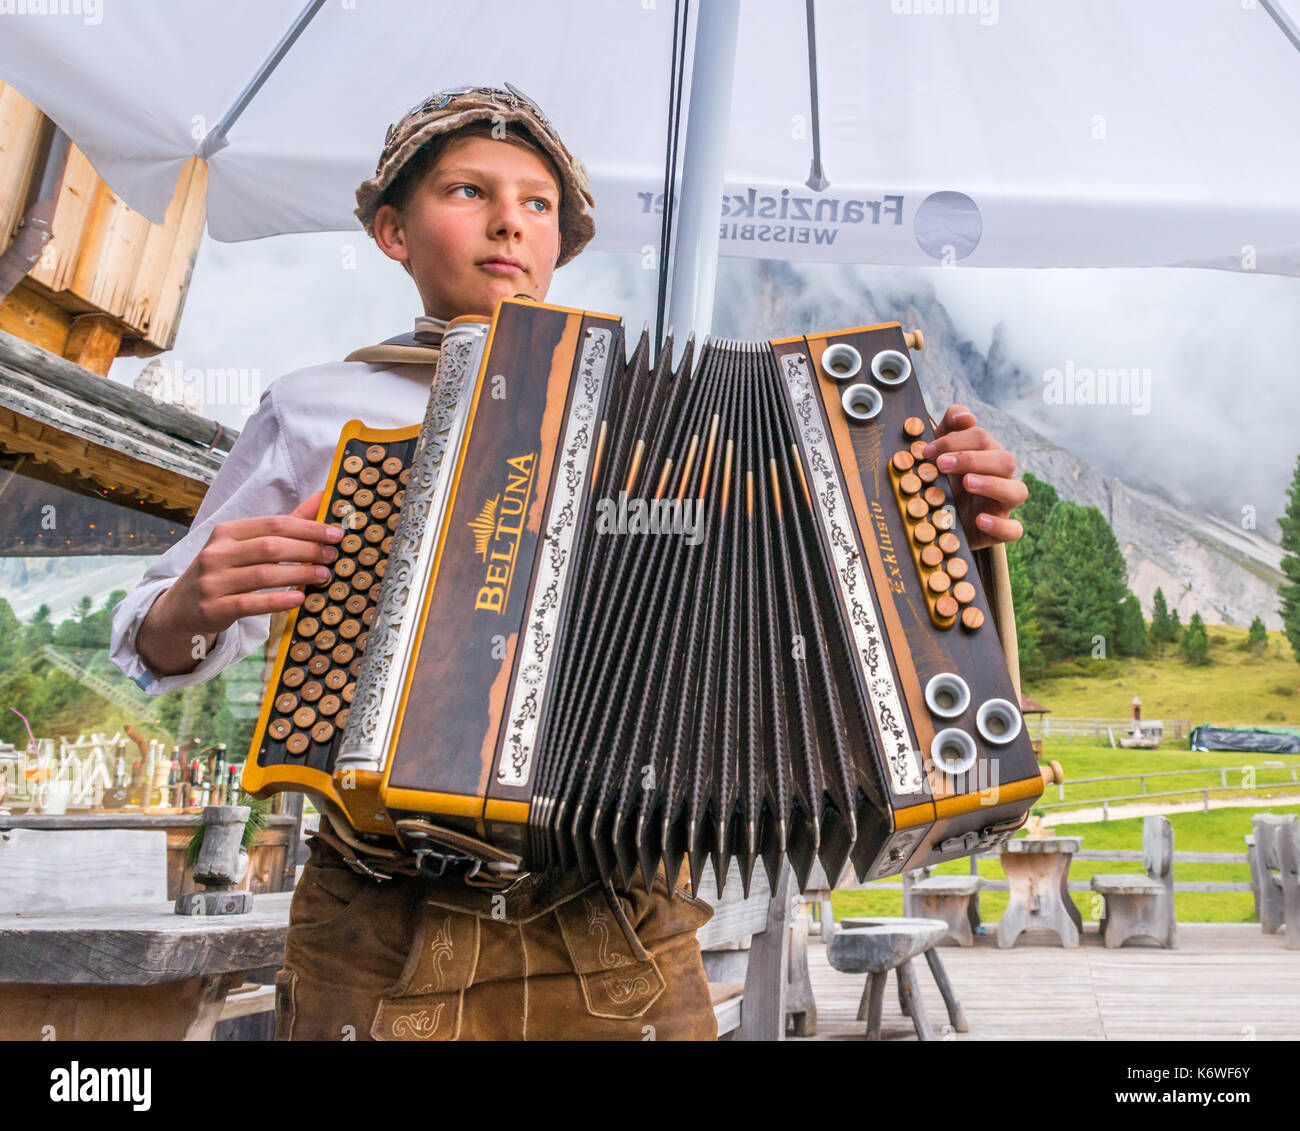 close-up-of-young-man-playing-the-accordion-a-typical-instrument-in-K6WF6Y.jpg